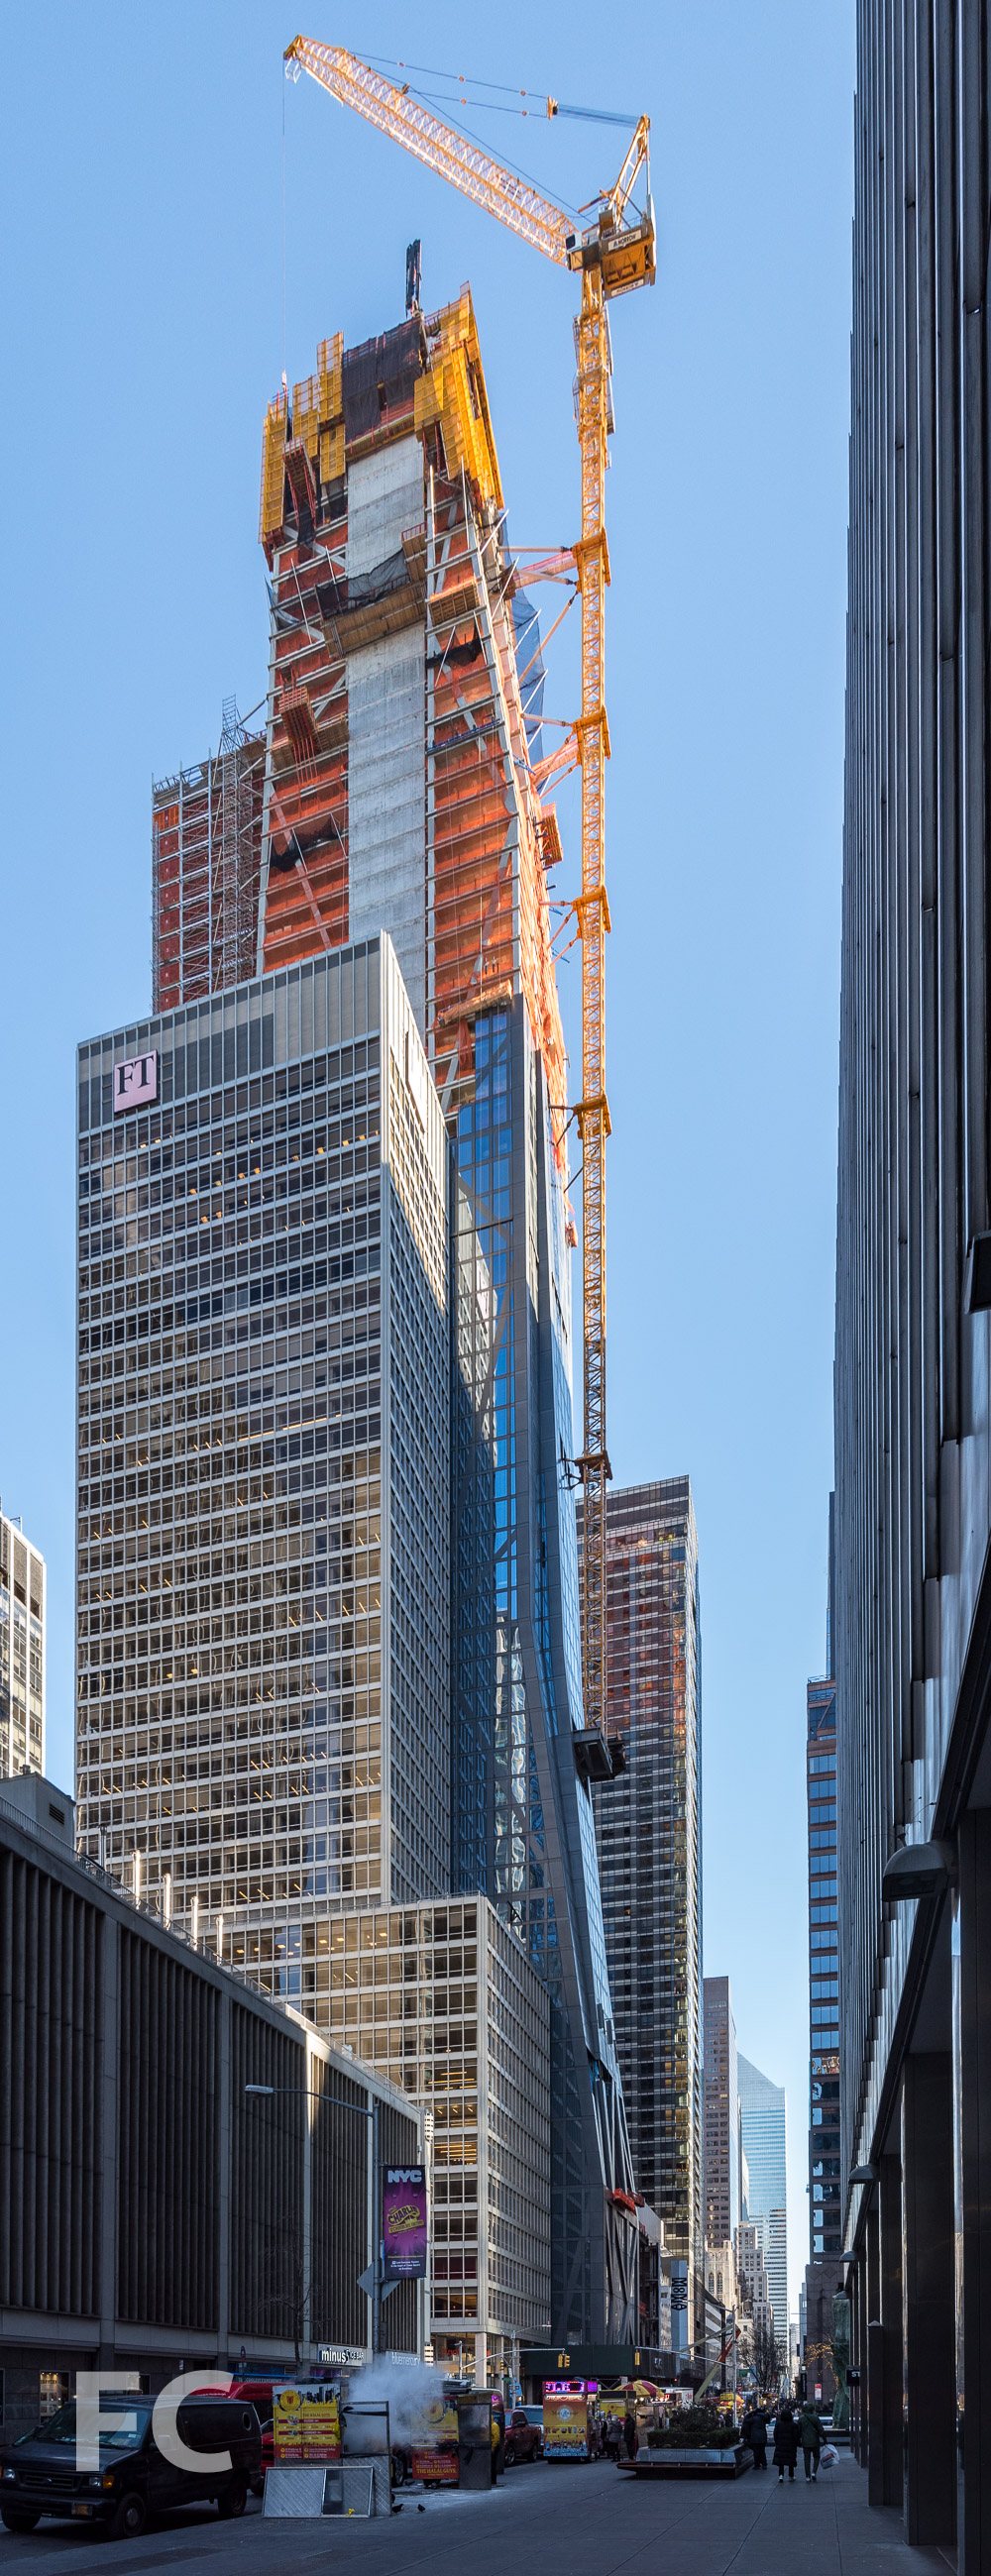 West facade from West 53rd Street.